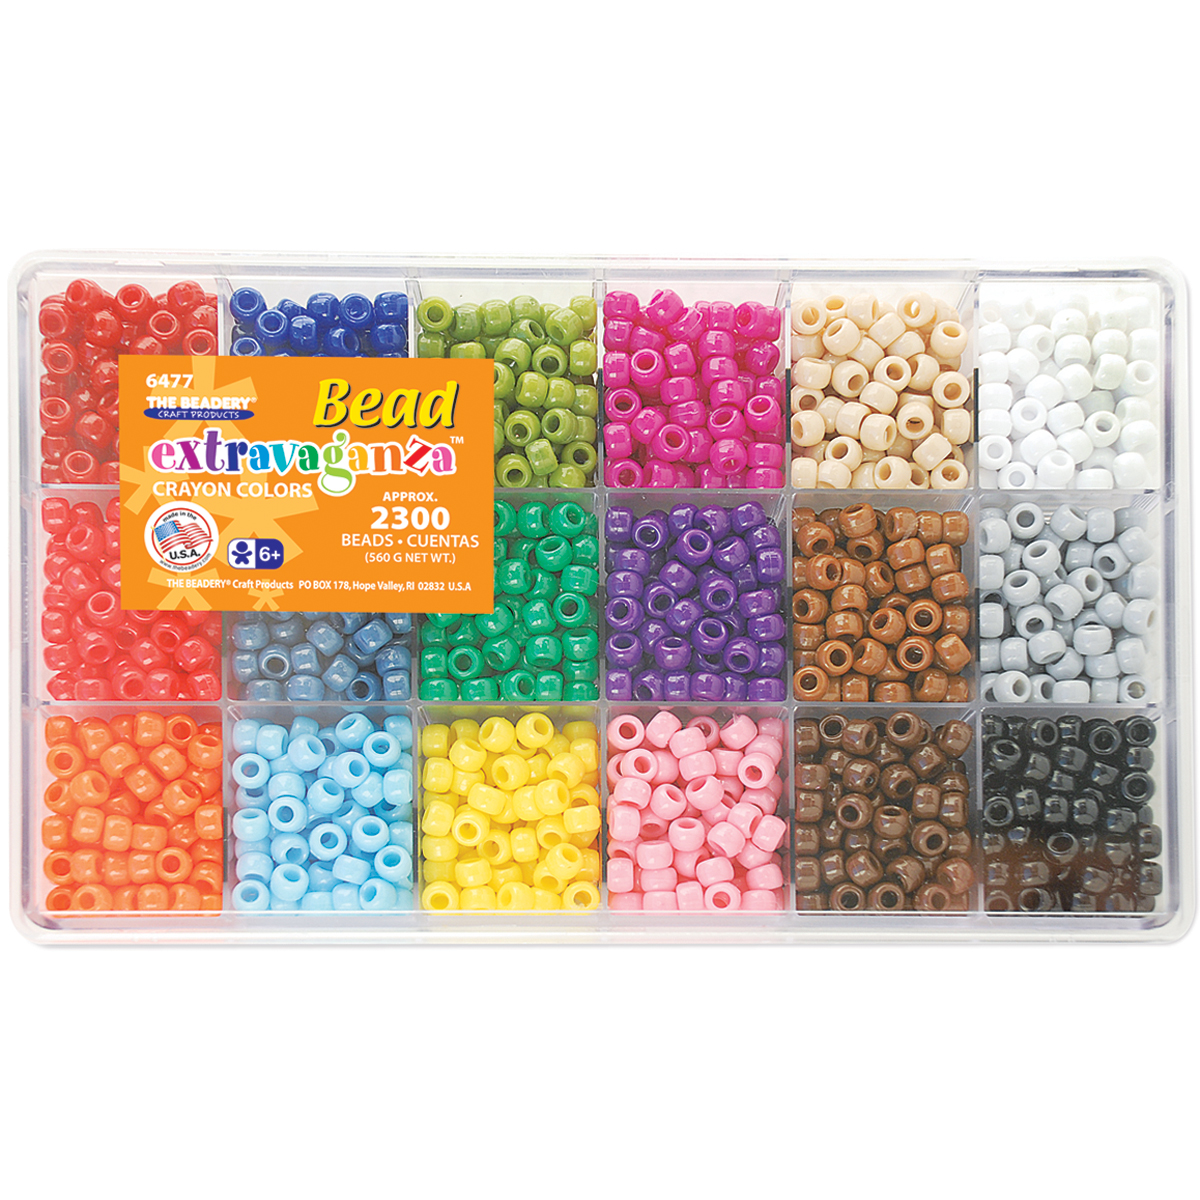 The Beadery Craft Products Crayon Colors Bead Box